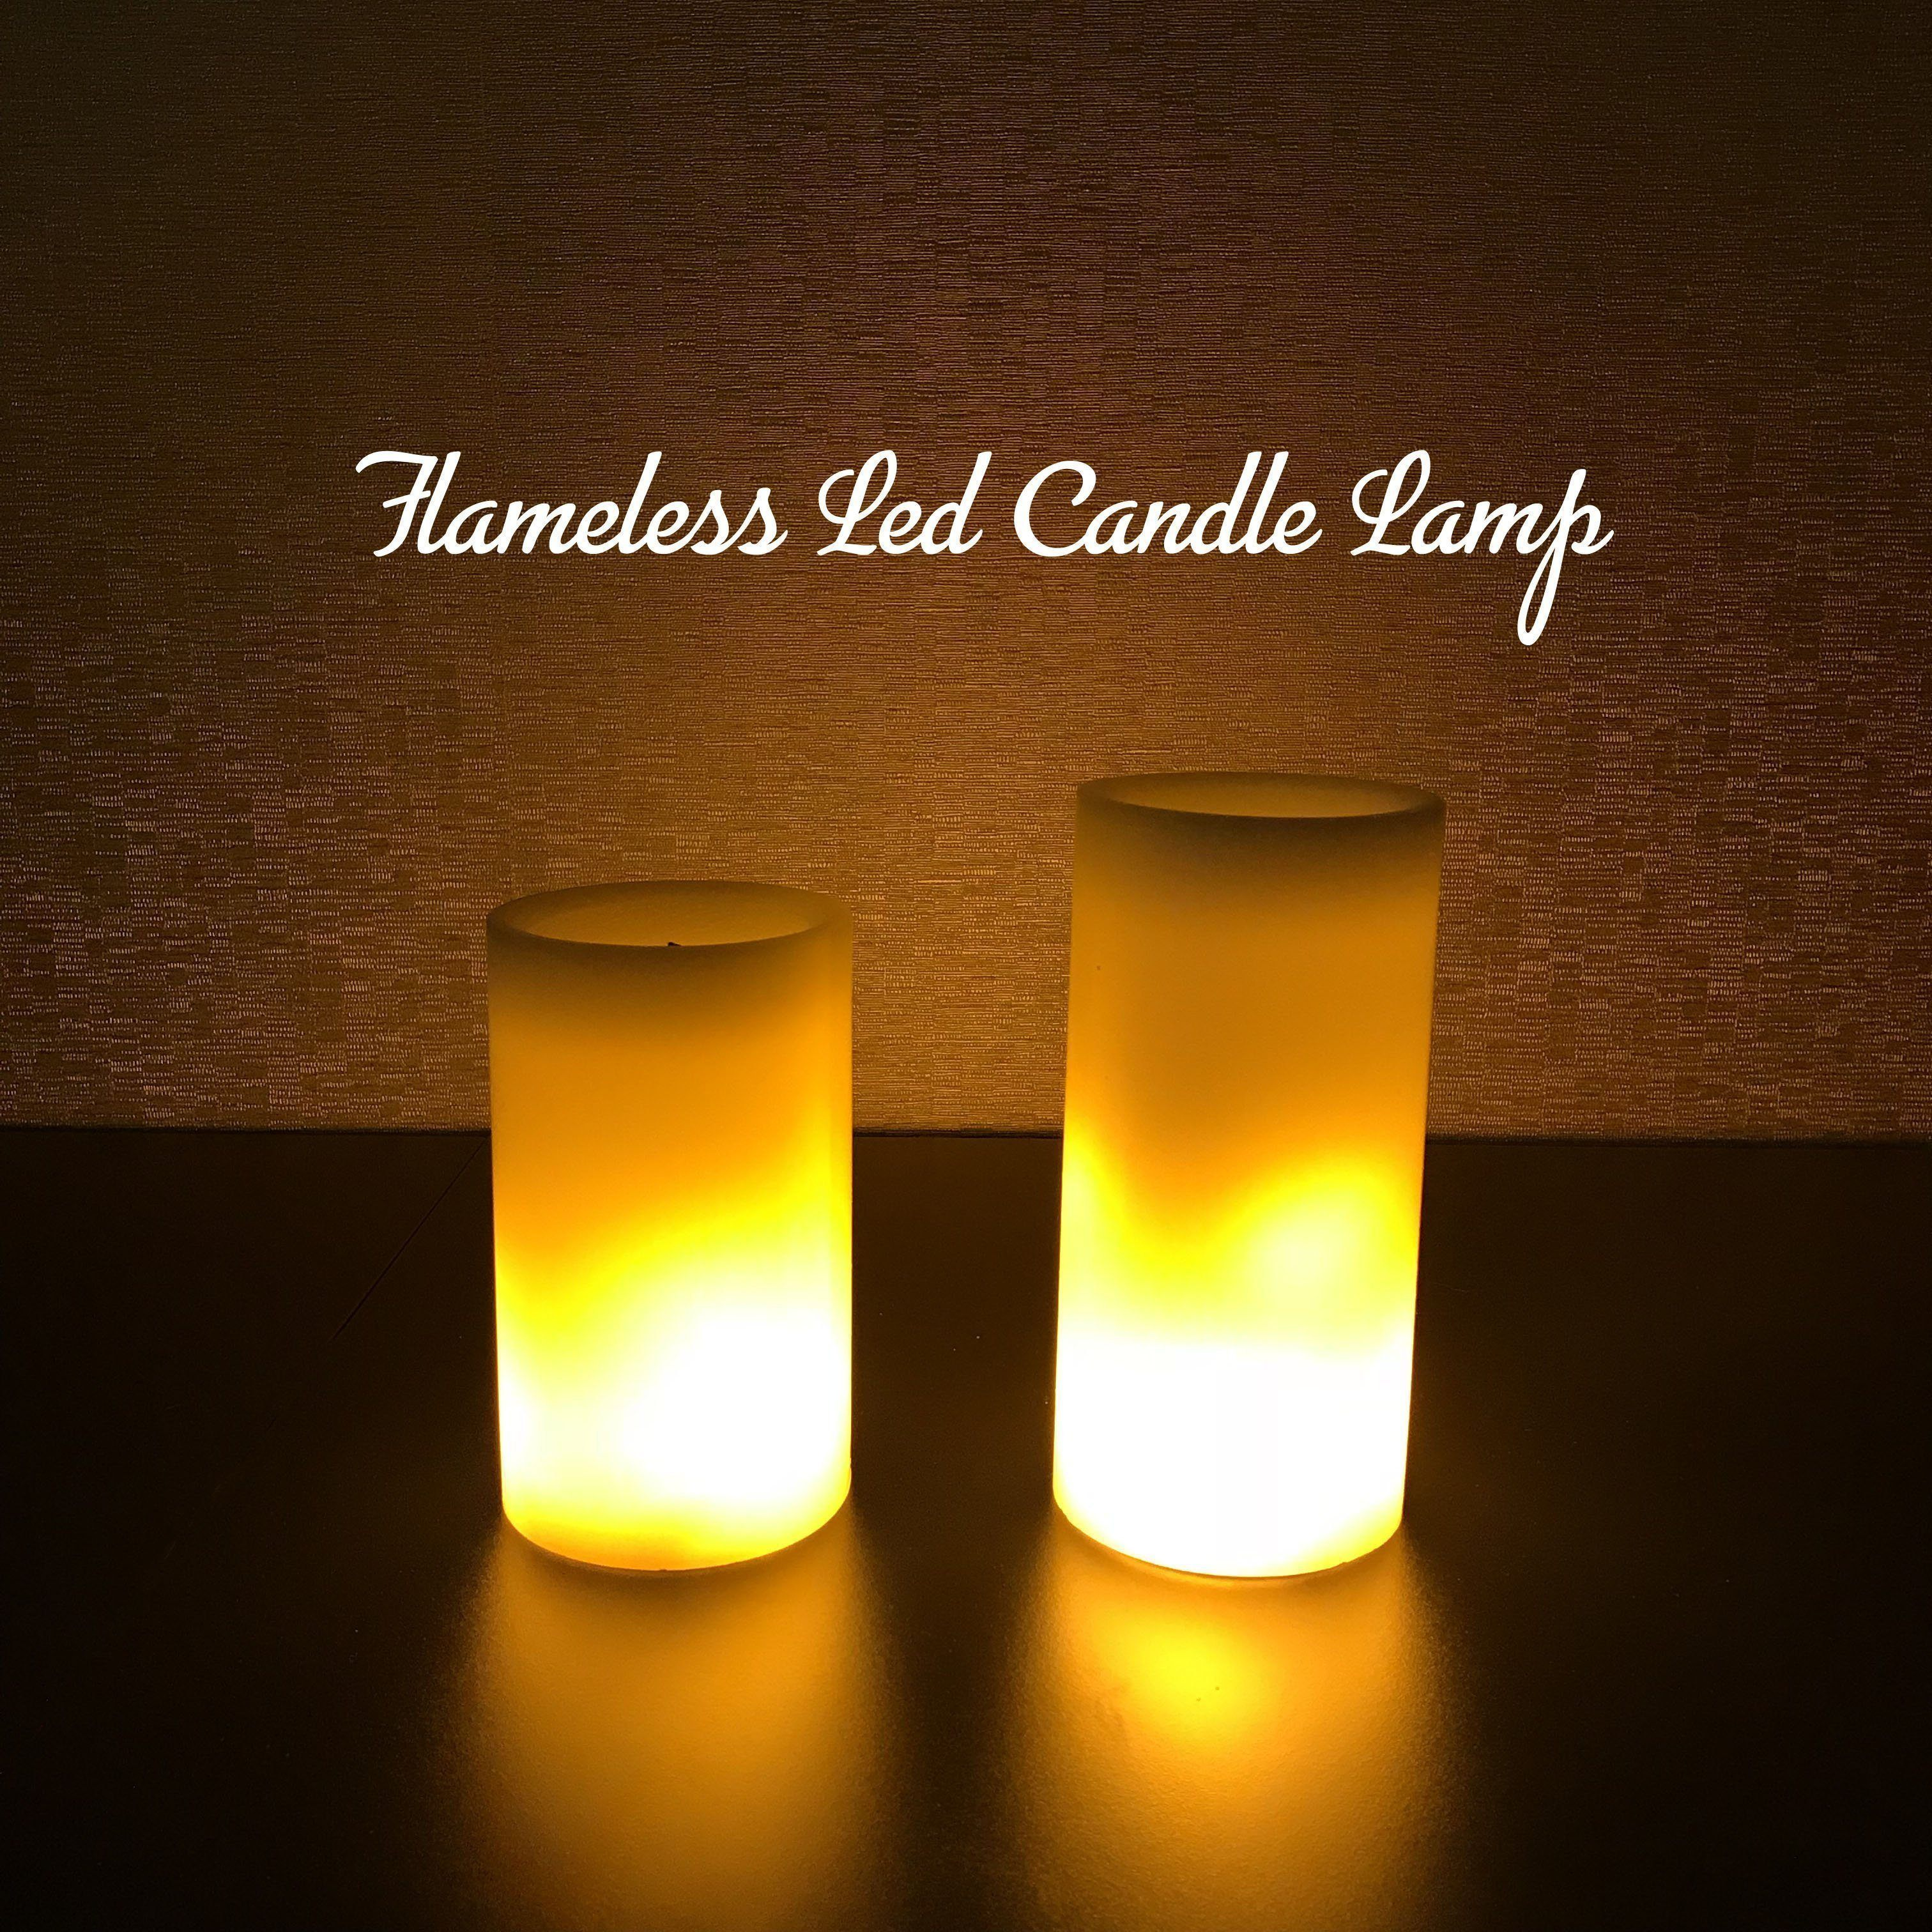 Flameless LED Candle Lamp